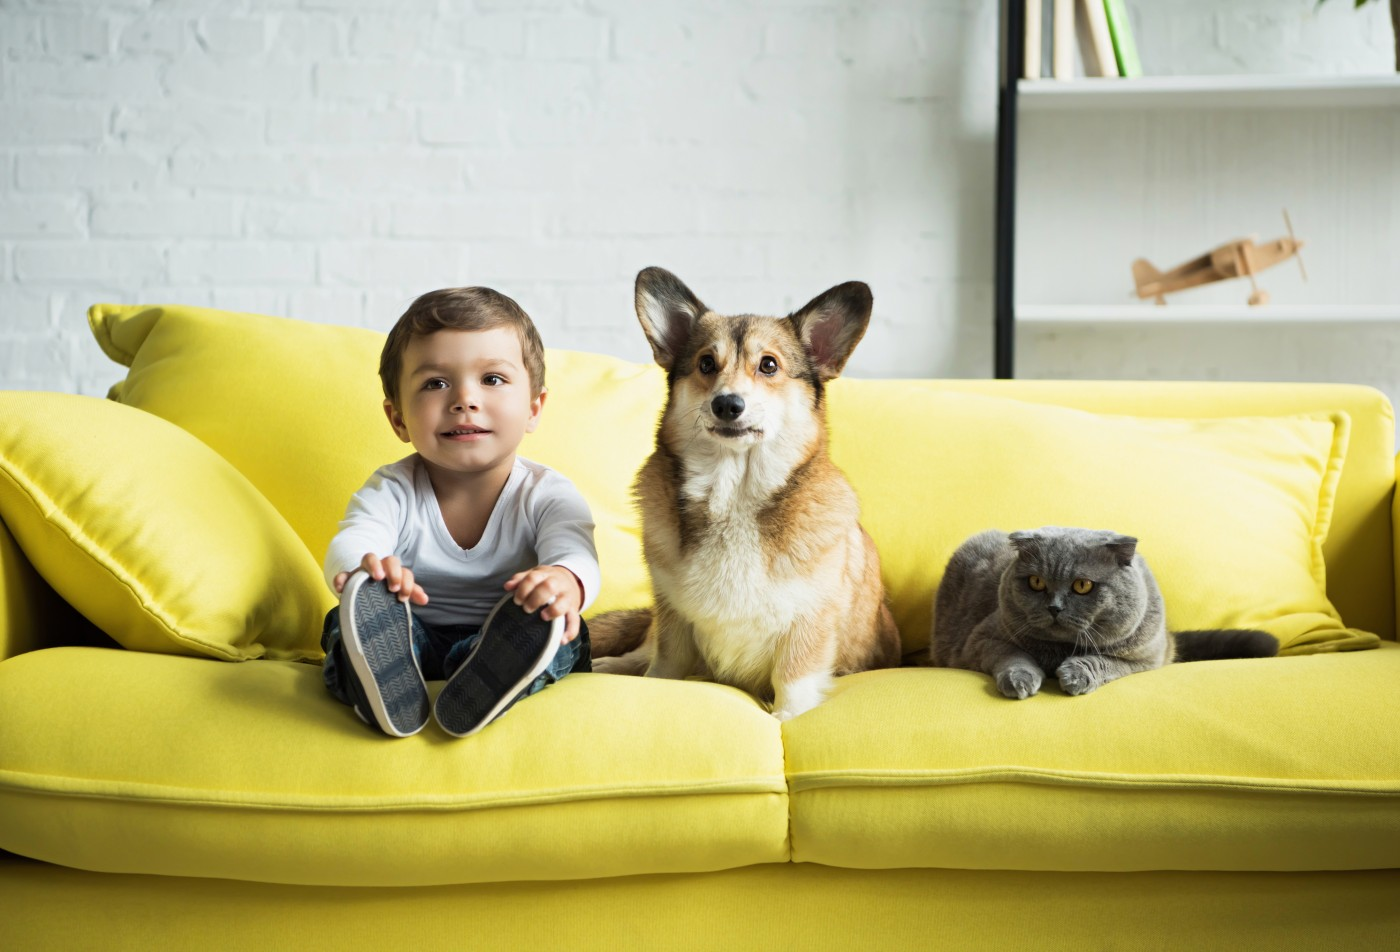 boy sitting on yellow sofa with dog and cat